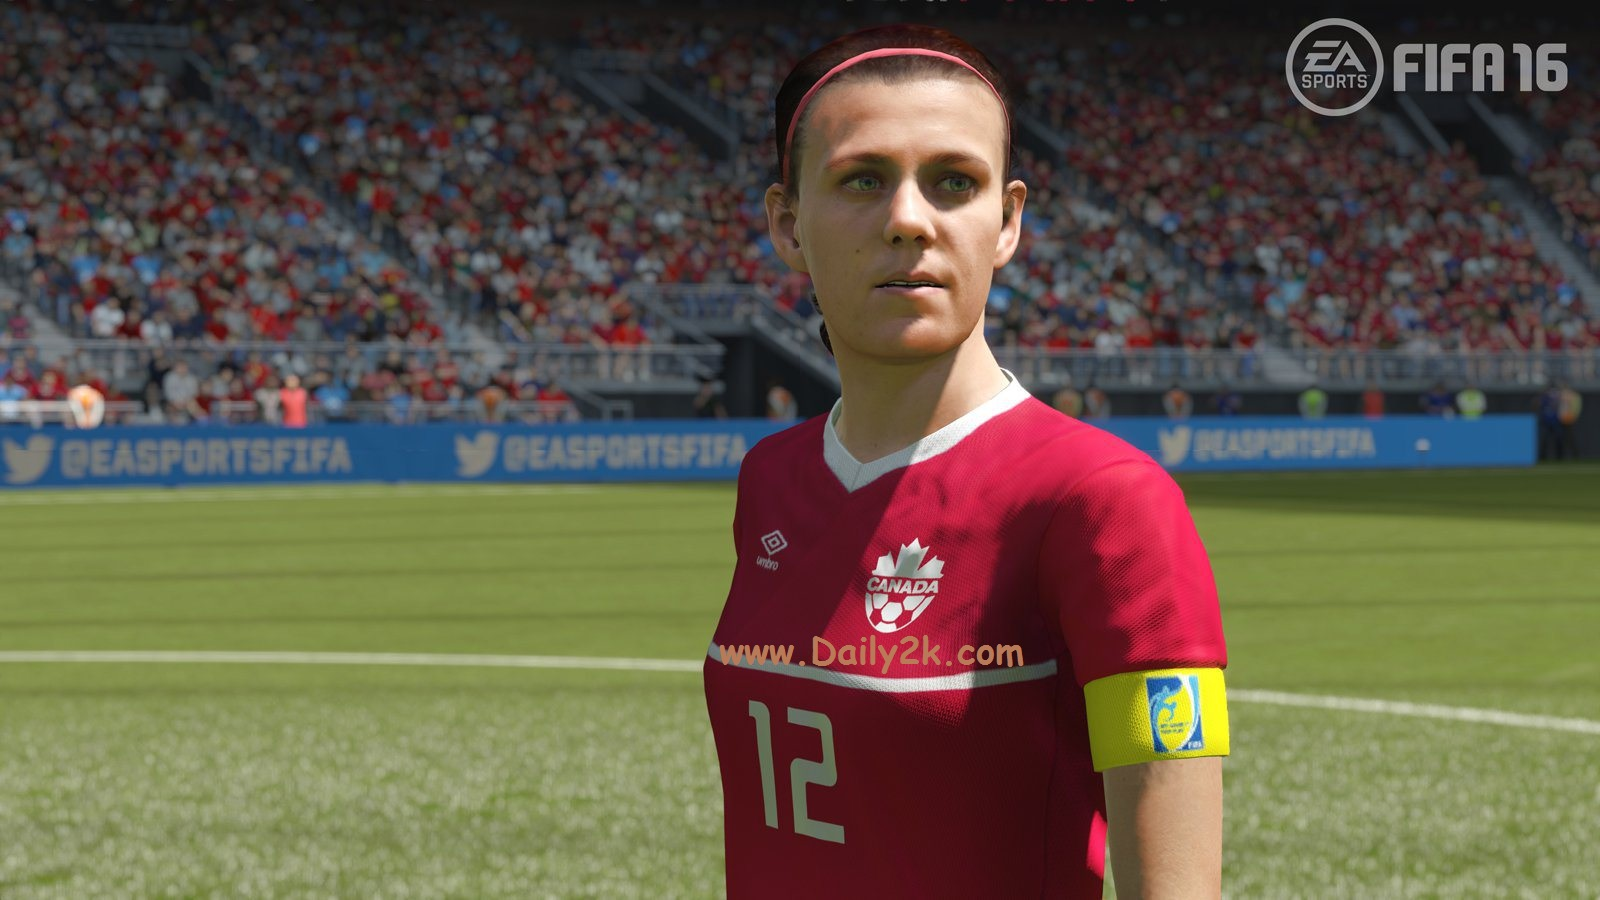 FIFA 16 Super Deluxe Edition Cracked Free-Daily2k